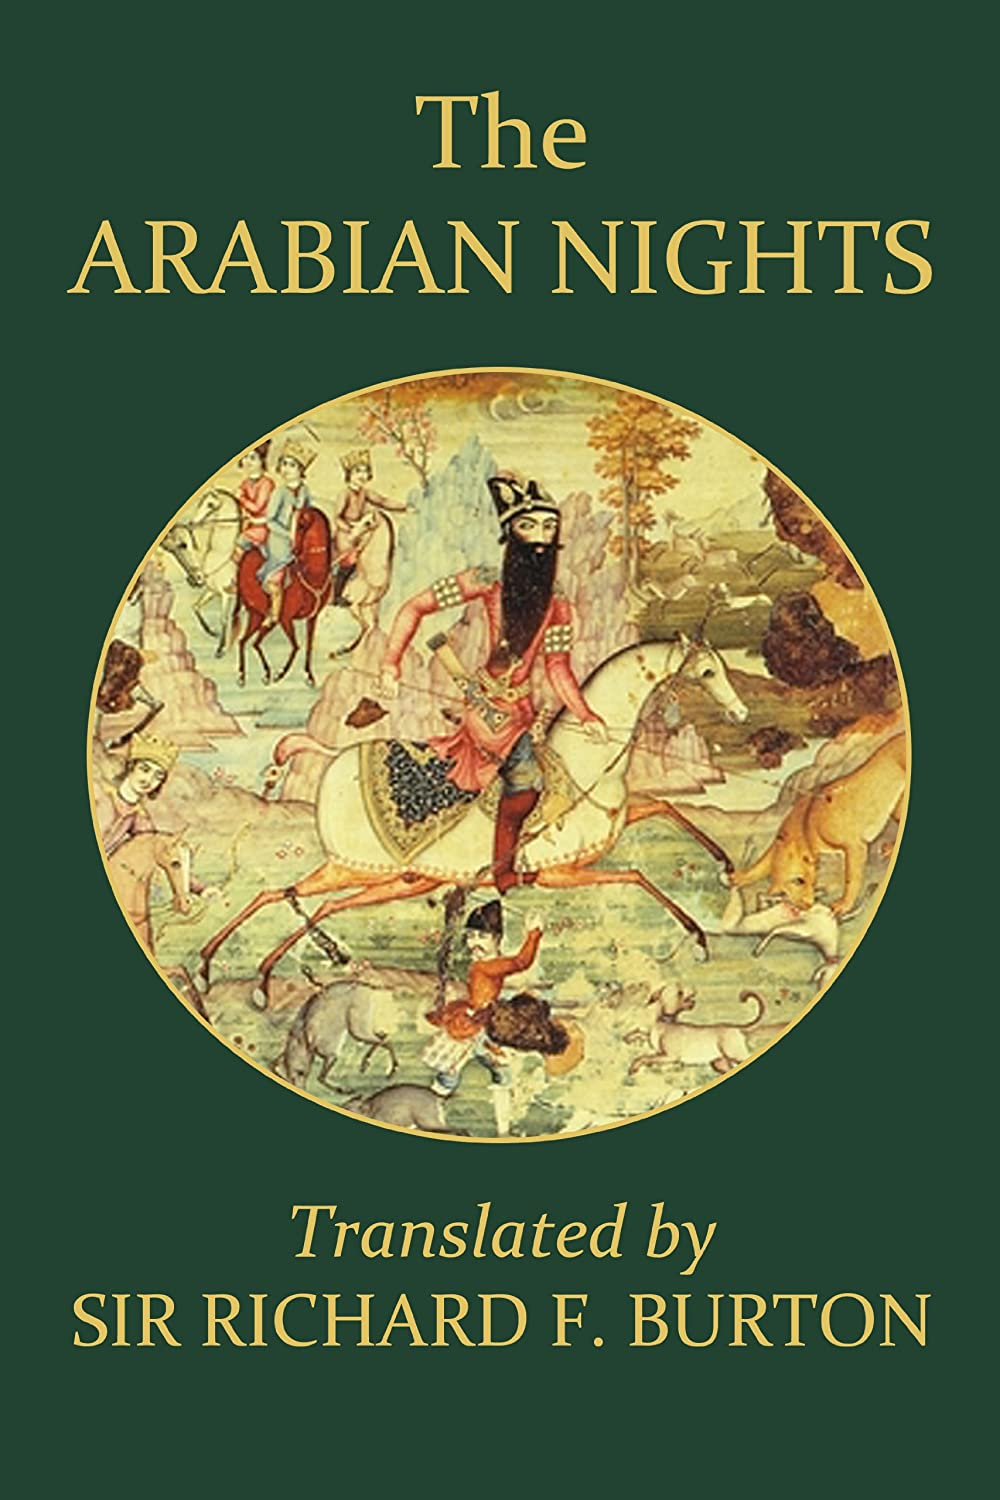 an analysis of sex in arabian nights translated by richard burton The exotic dimension of foreignizing strategies burton's translation burton's translation of the arabian nights analysis of burton's translation.